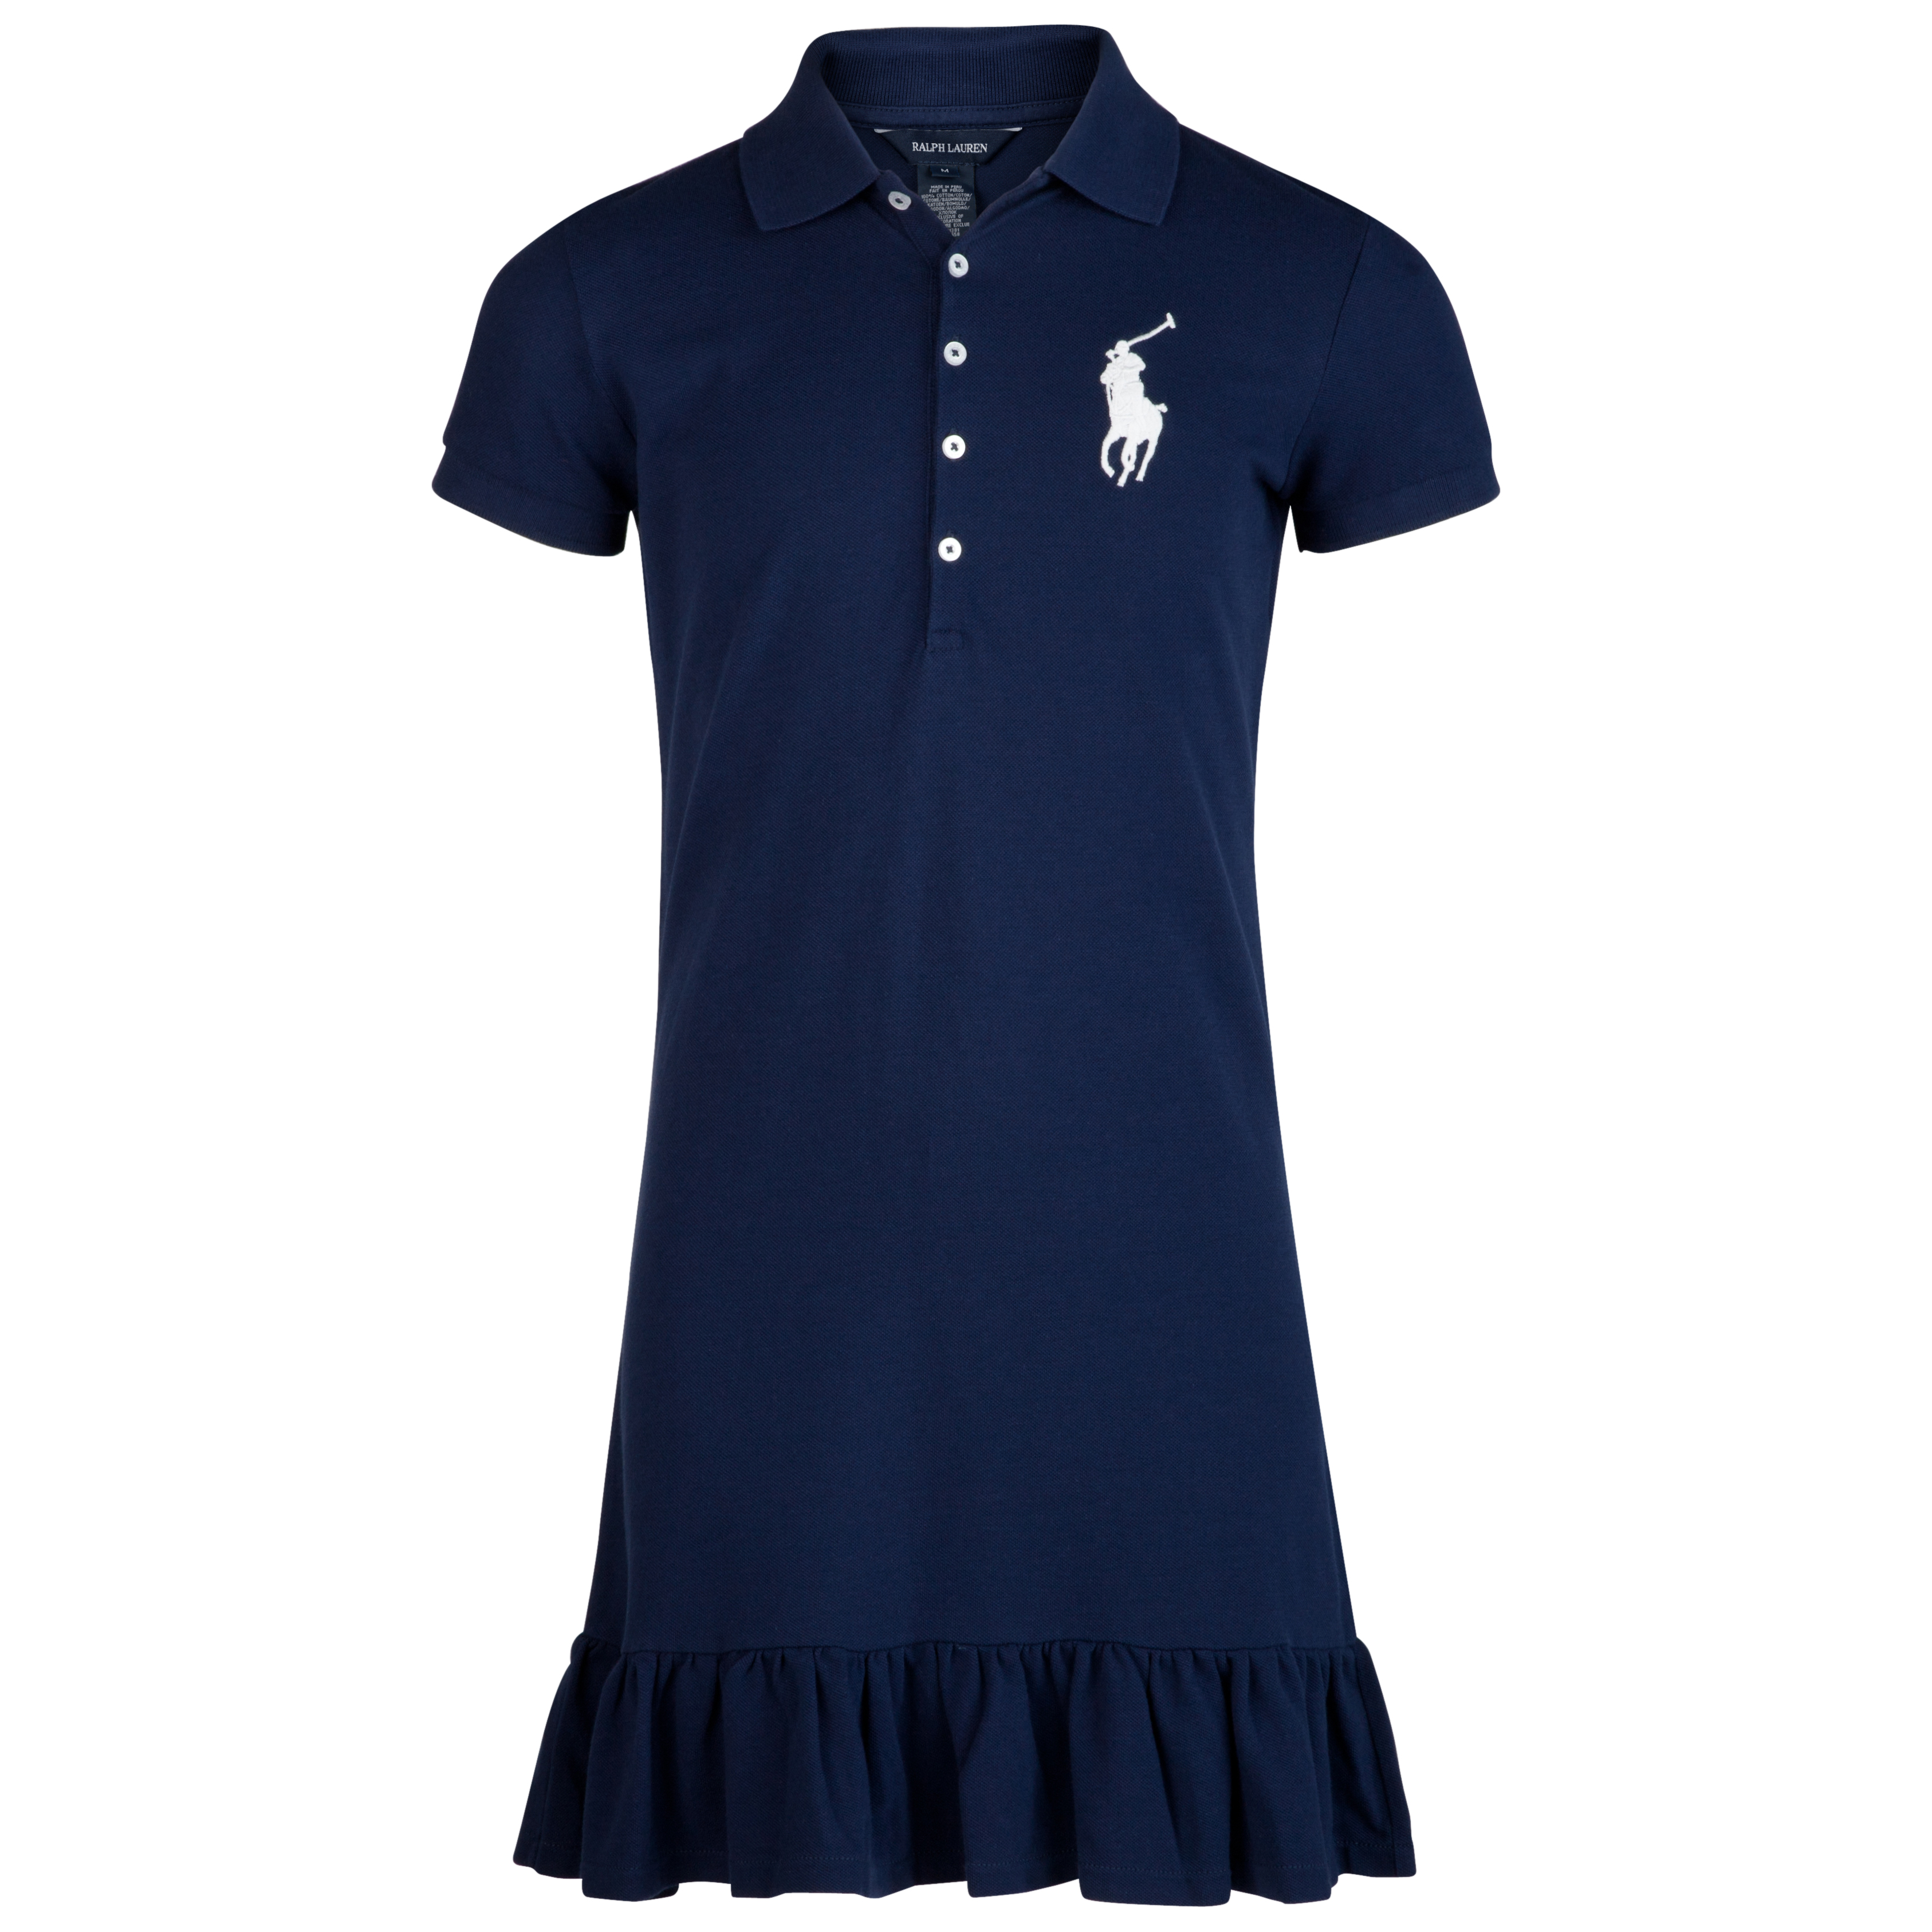 Polo Ralph Lauren Polo Dress Mesh Polo - French Navy - Older Girls